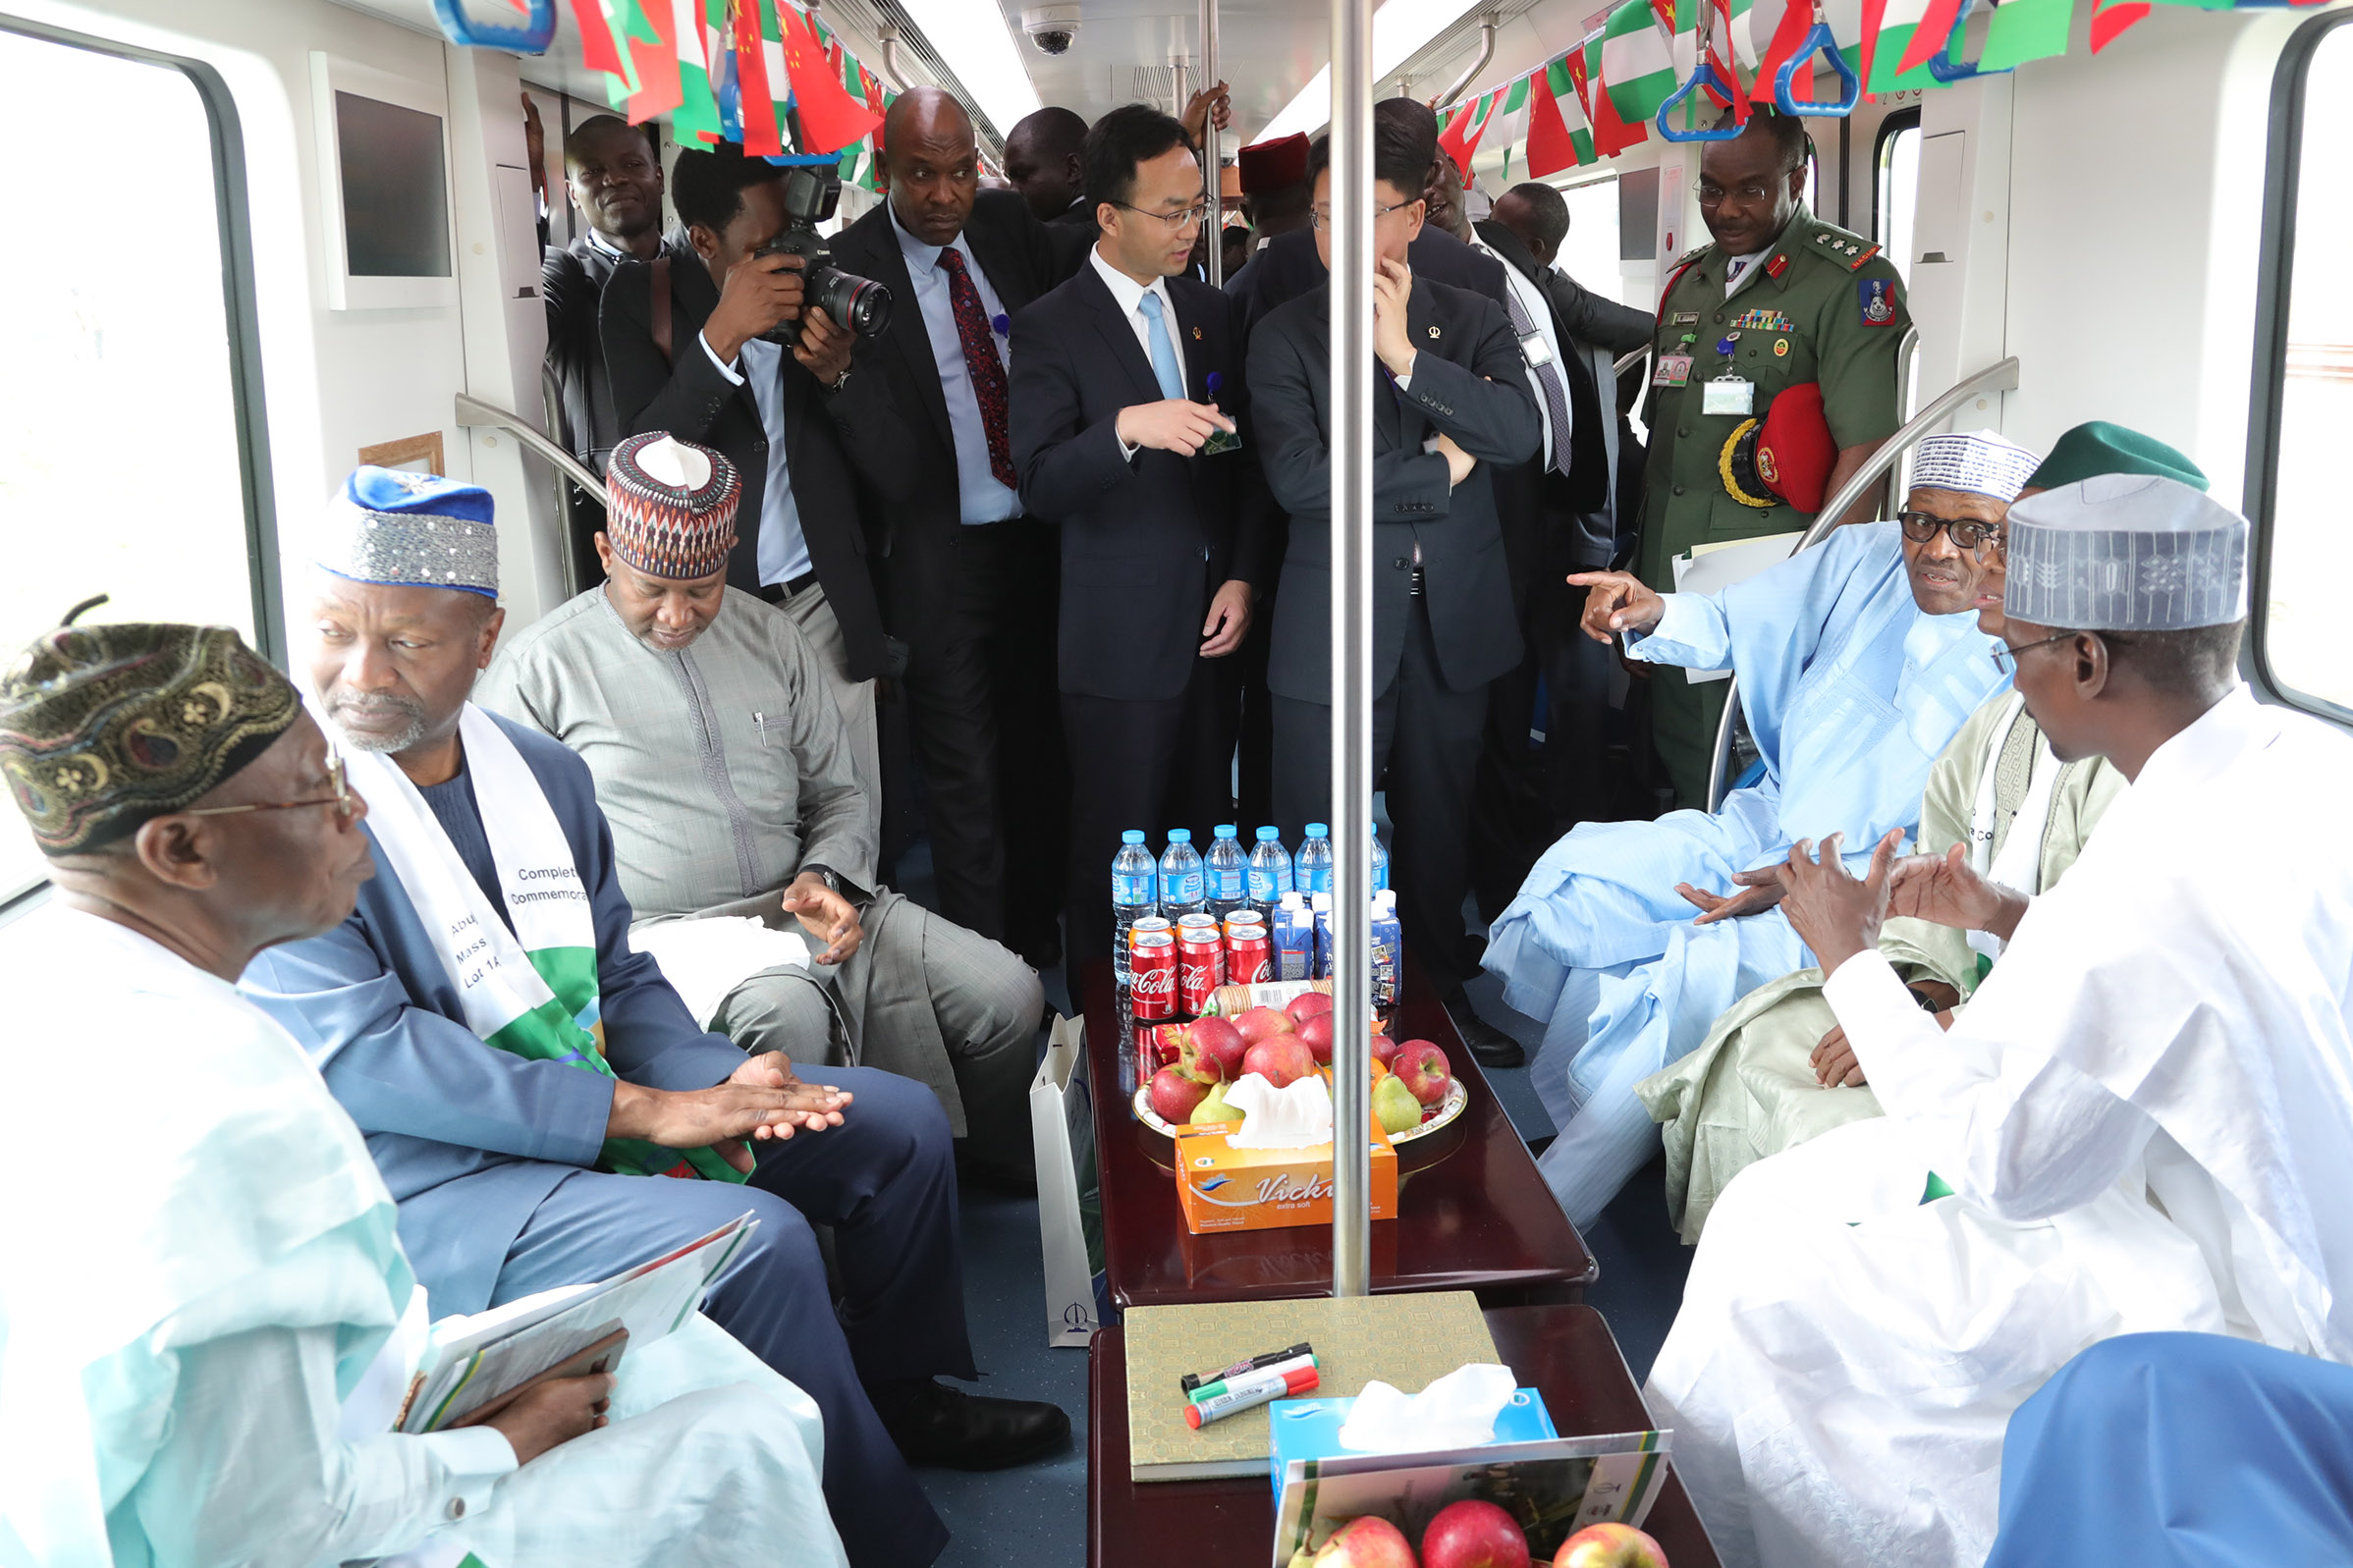 The Day in Pictures: President Muhammadu Buhari Commissions Abuja Light Rail